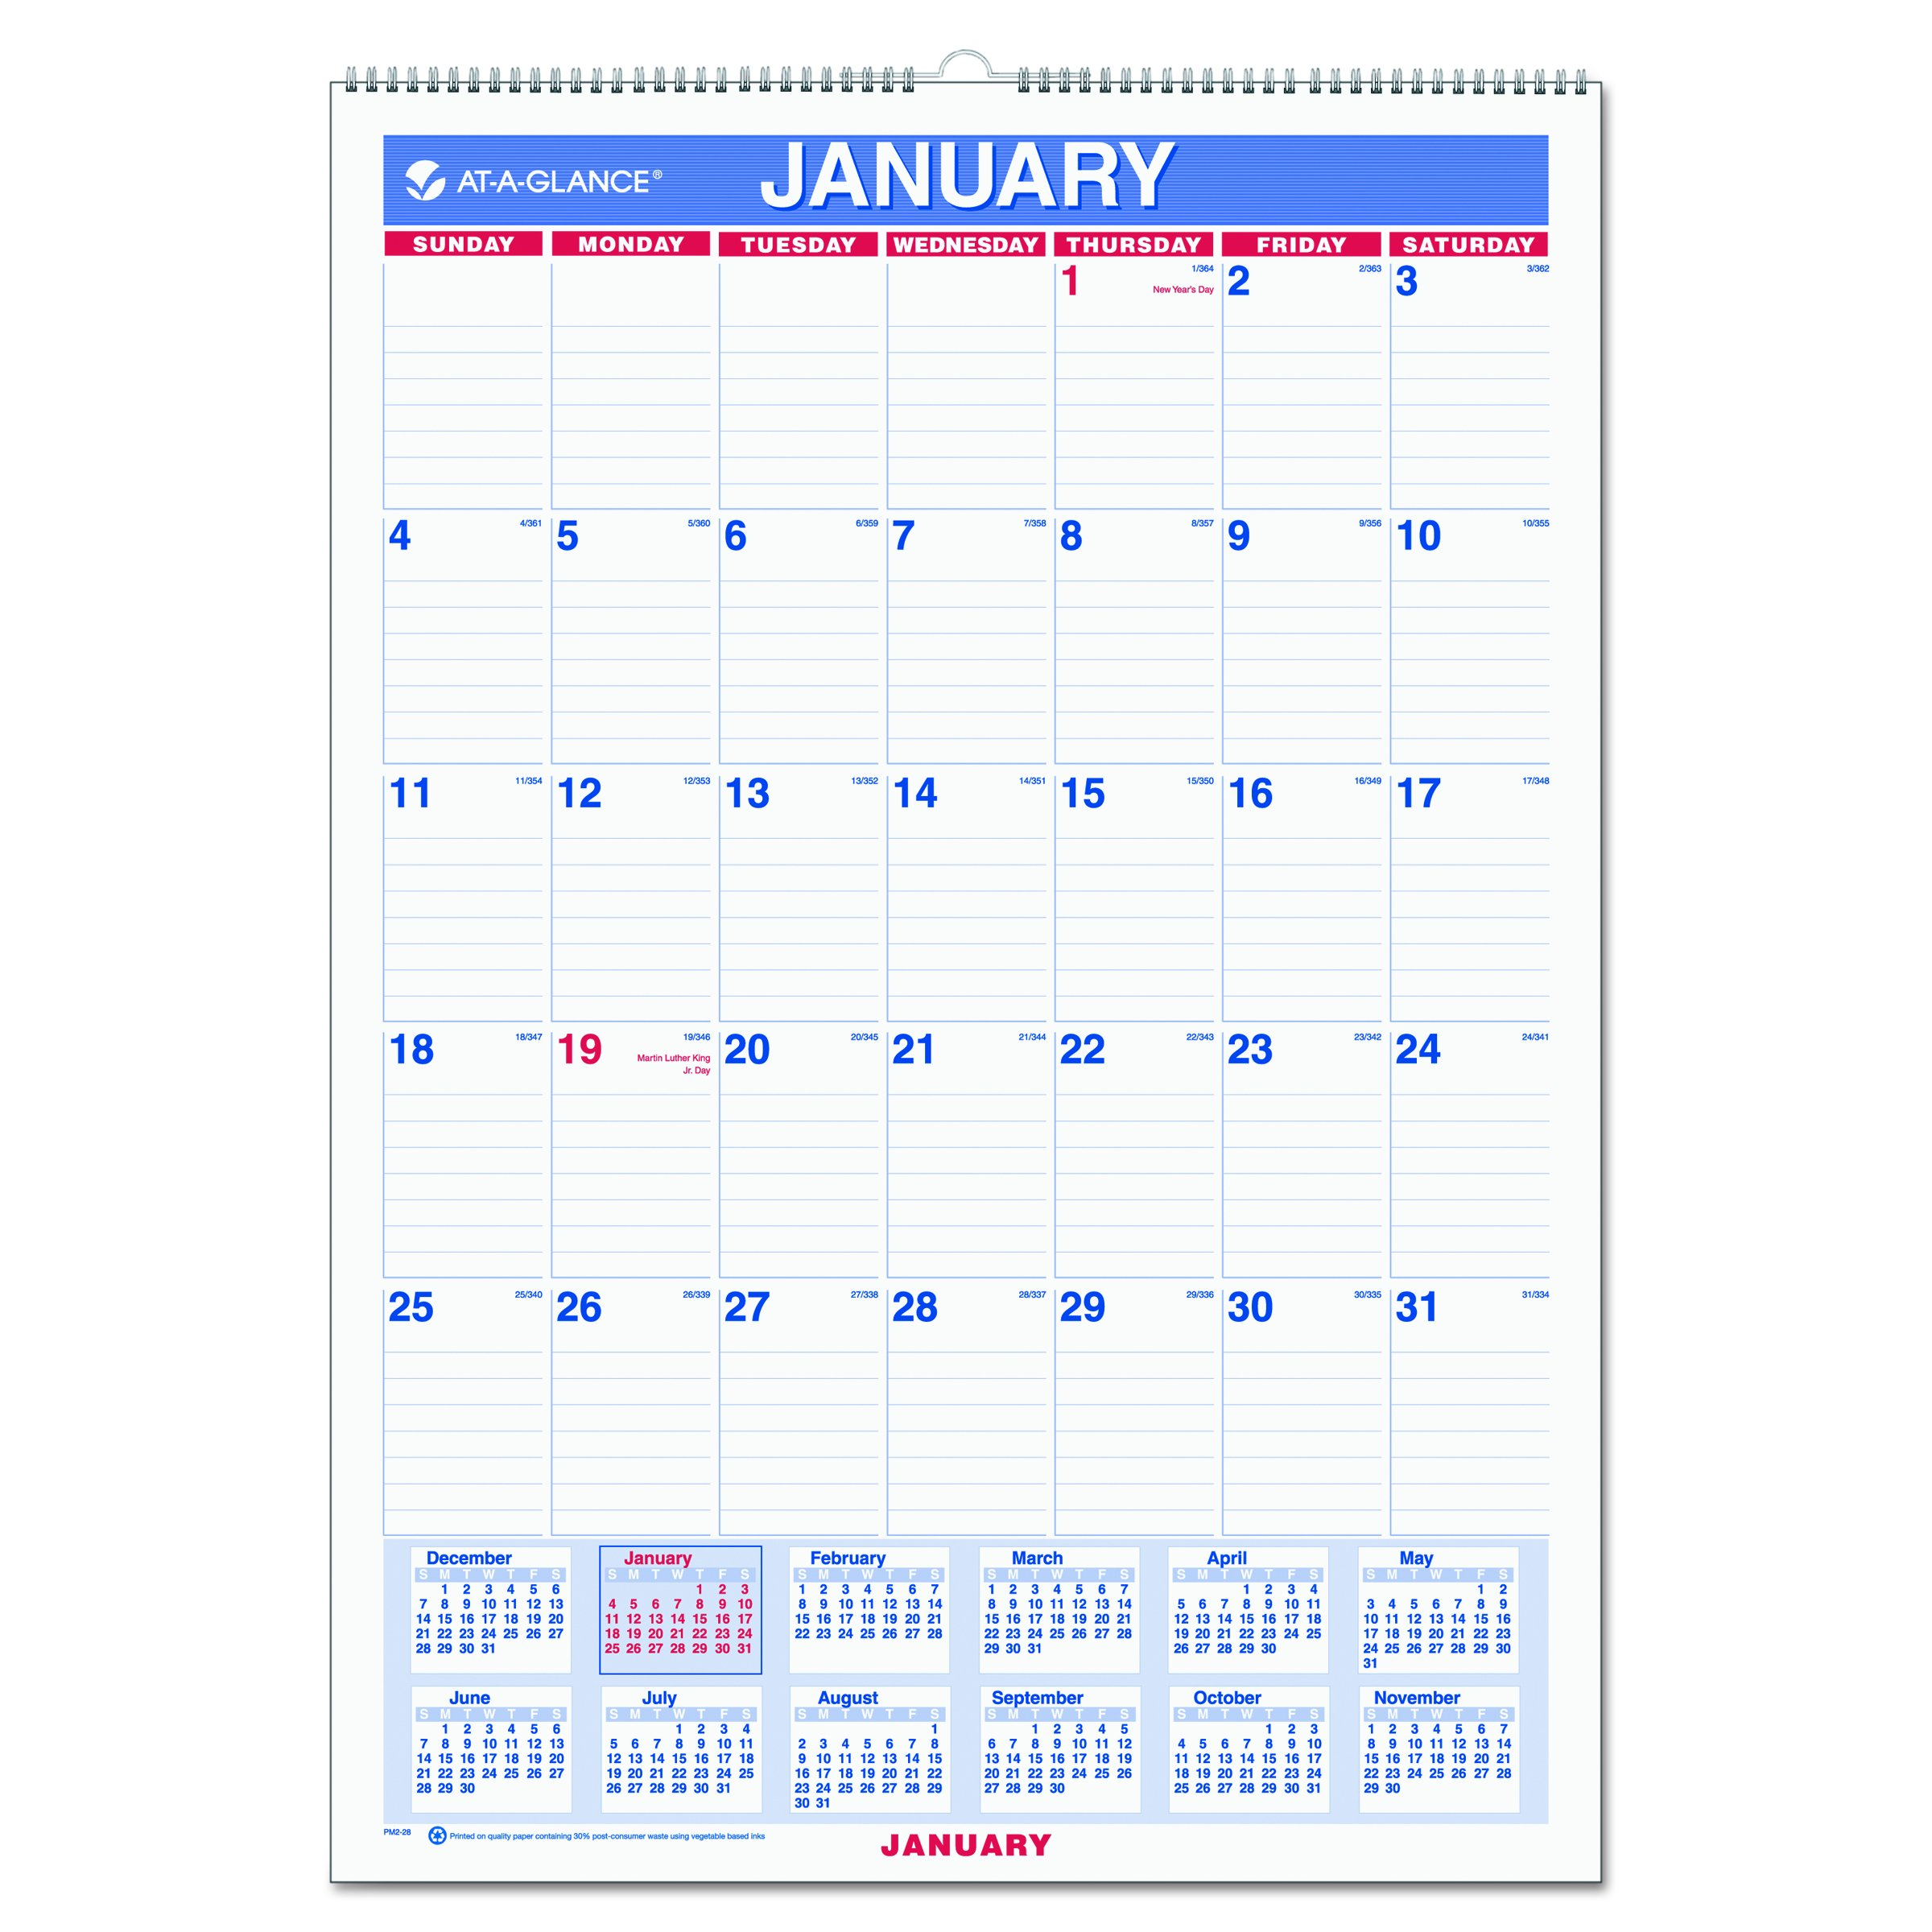 AT-A-GLANCE Wall Calendar 2017, Monthly, 12 x 17'', Ruled, Wirebound (PM2-28)